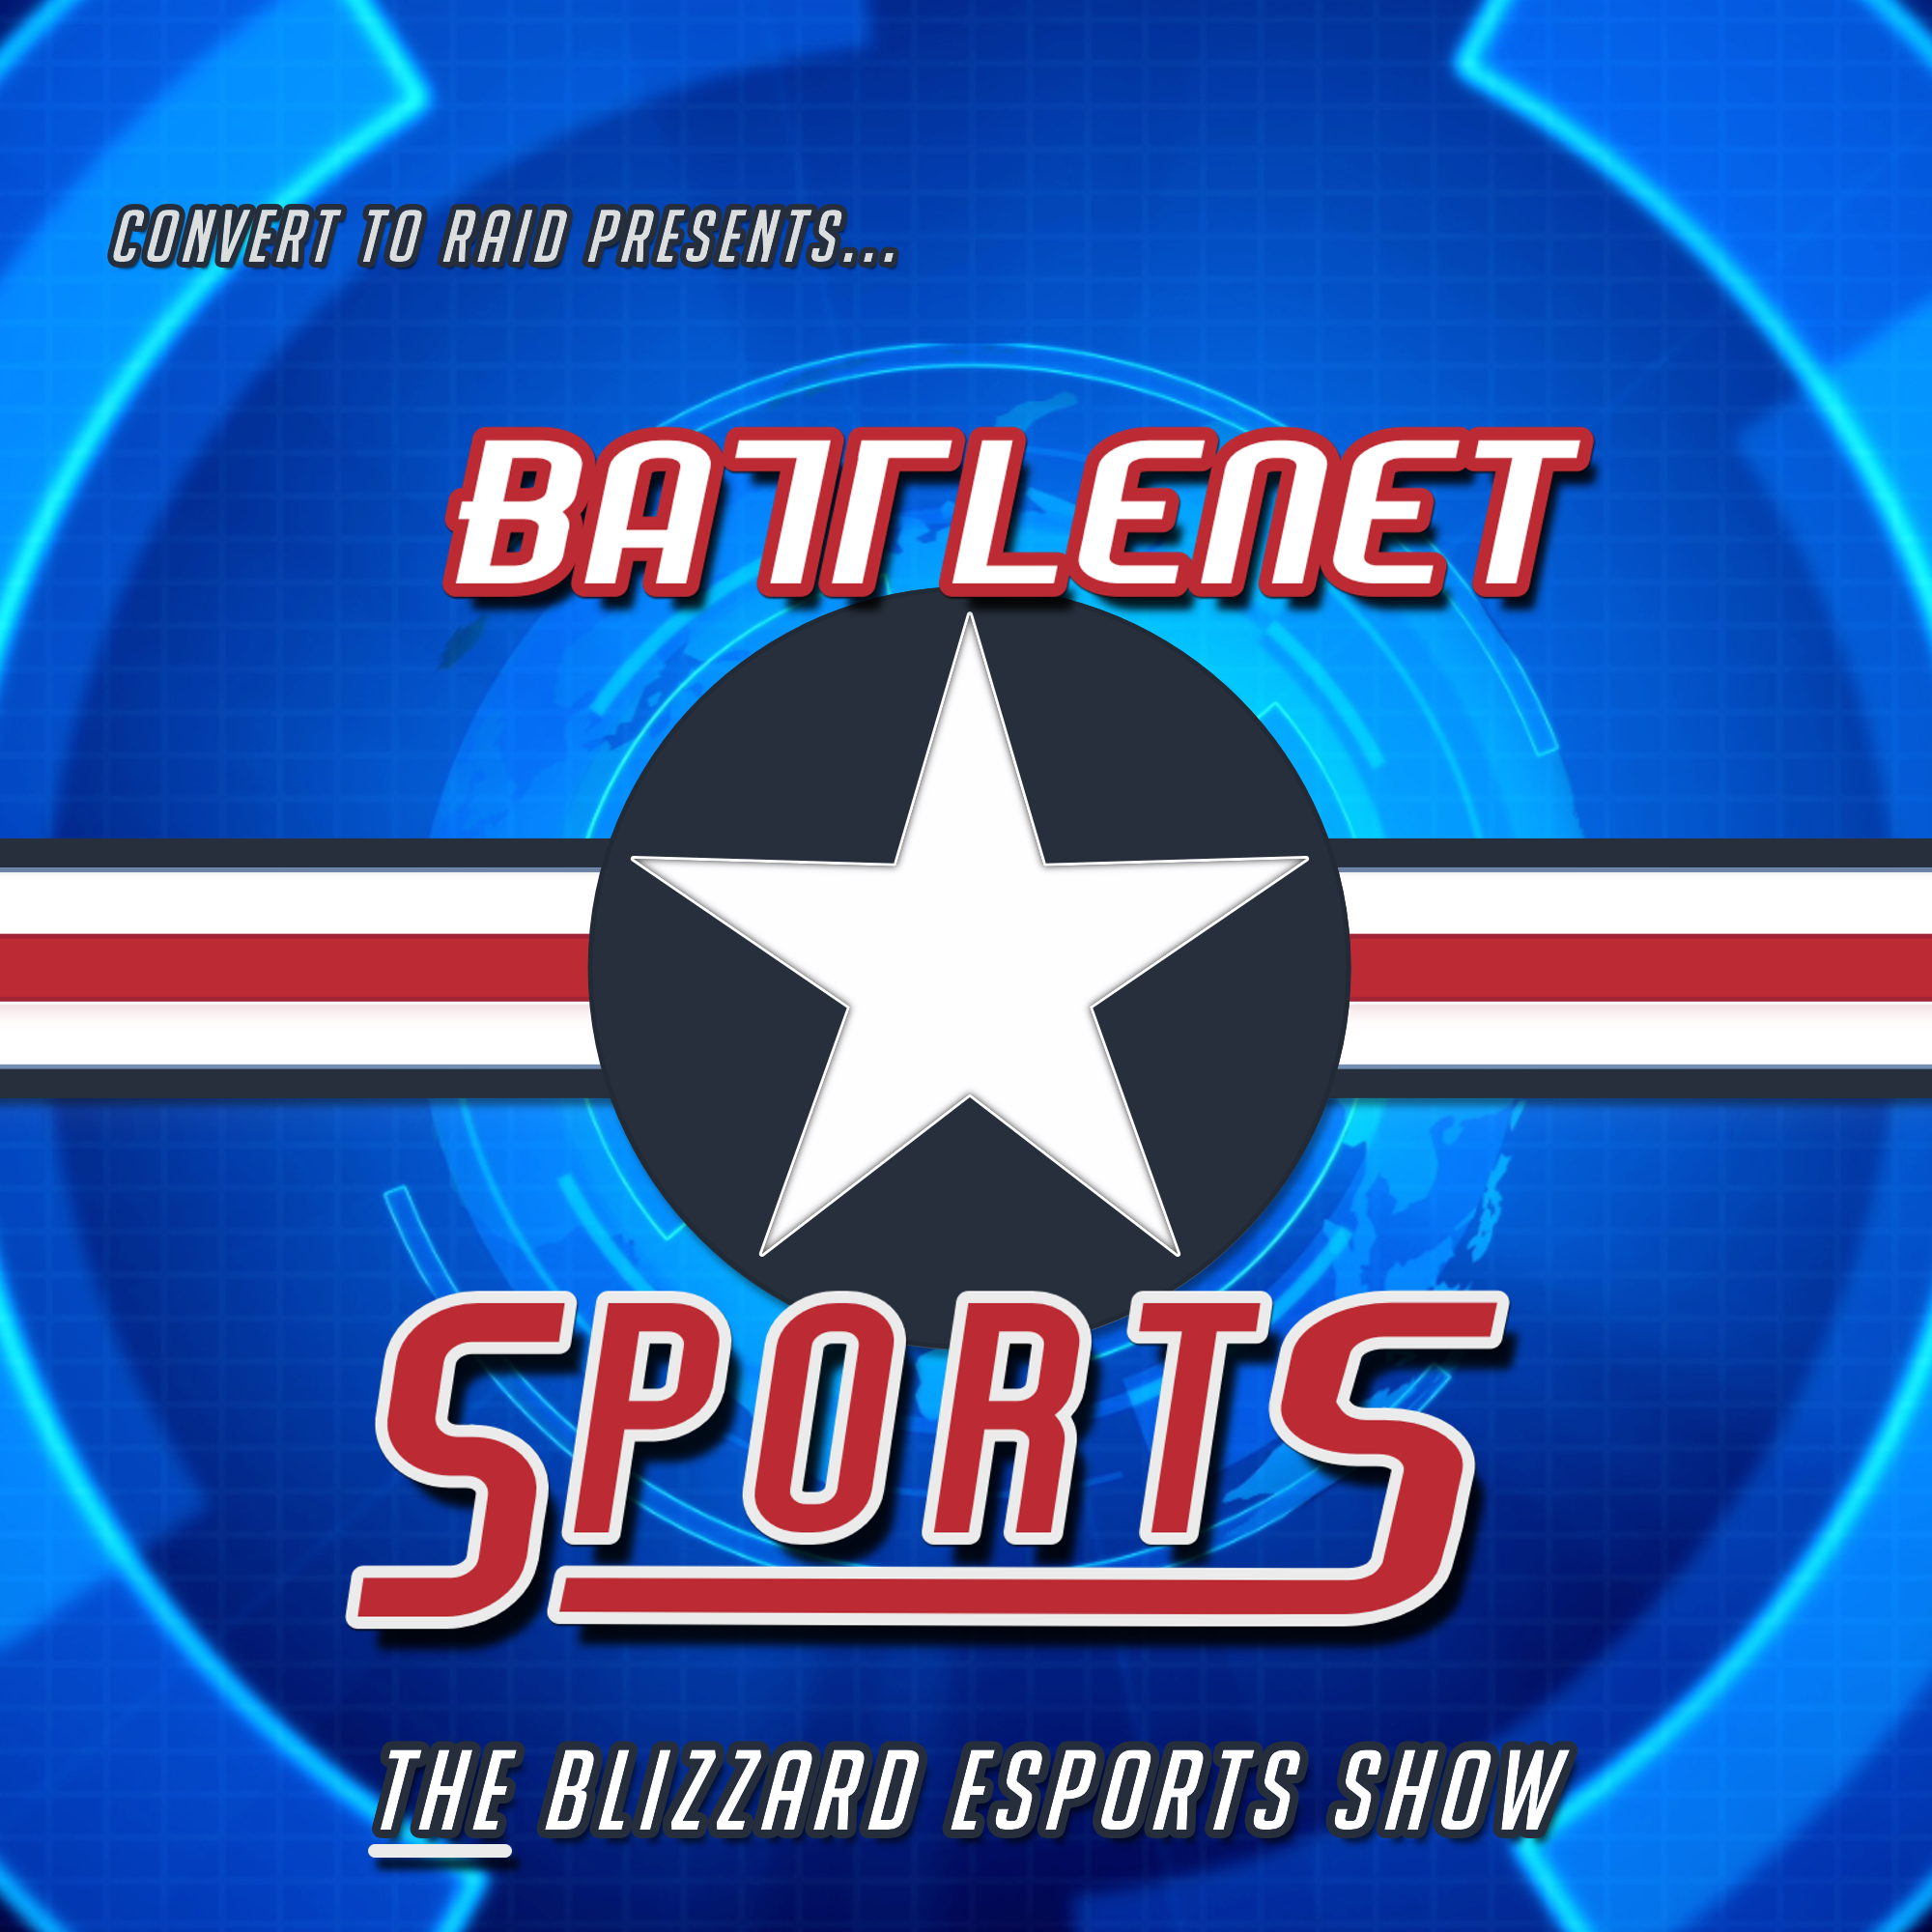 Battlenet Sports: Covering professional esports action from Blizzard